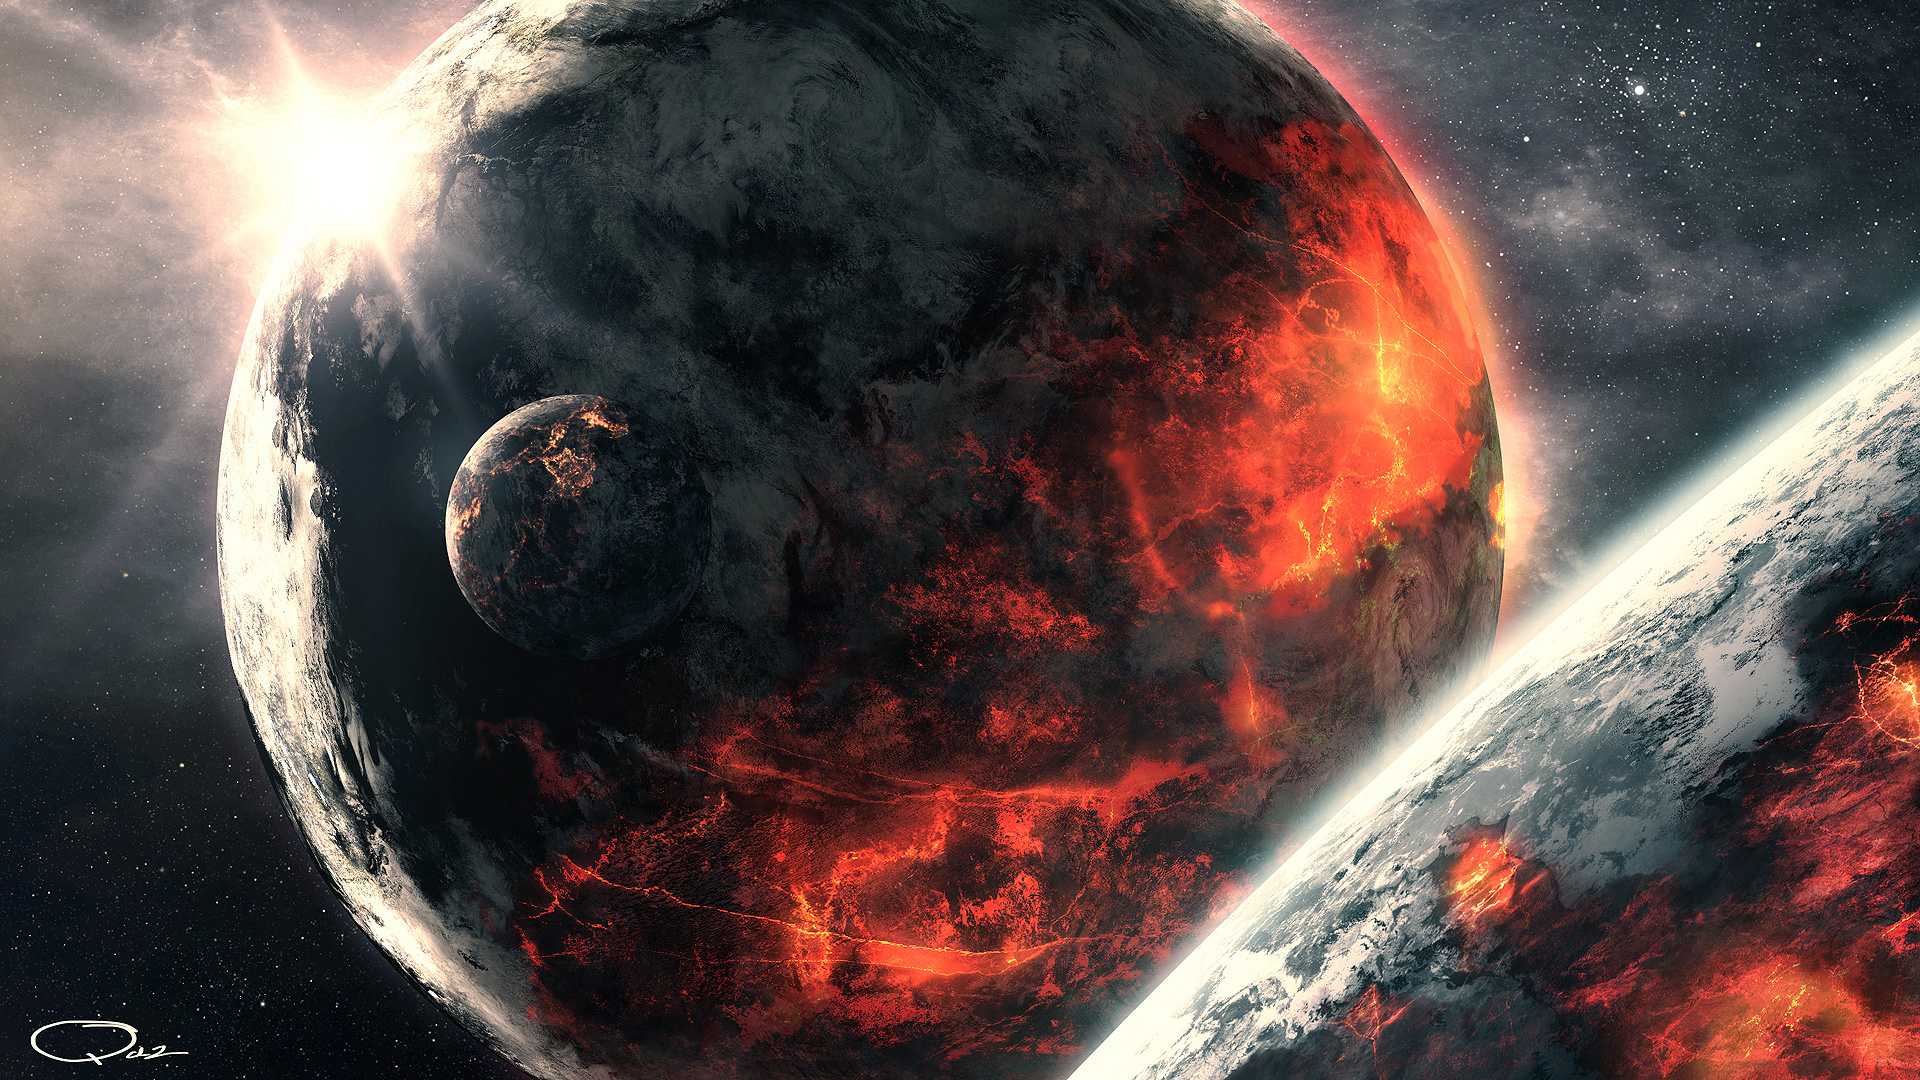 Full HD Volcanic Planet in Space1080p wallpaper 1920x1080